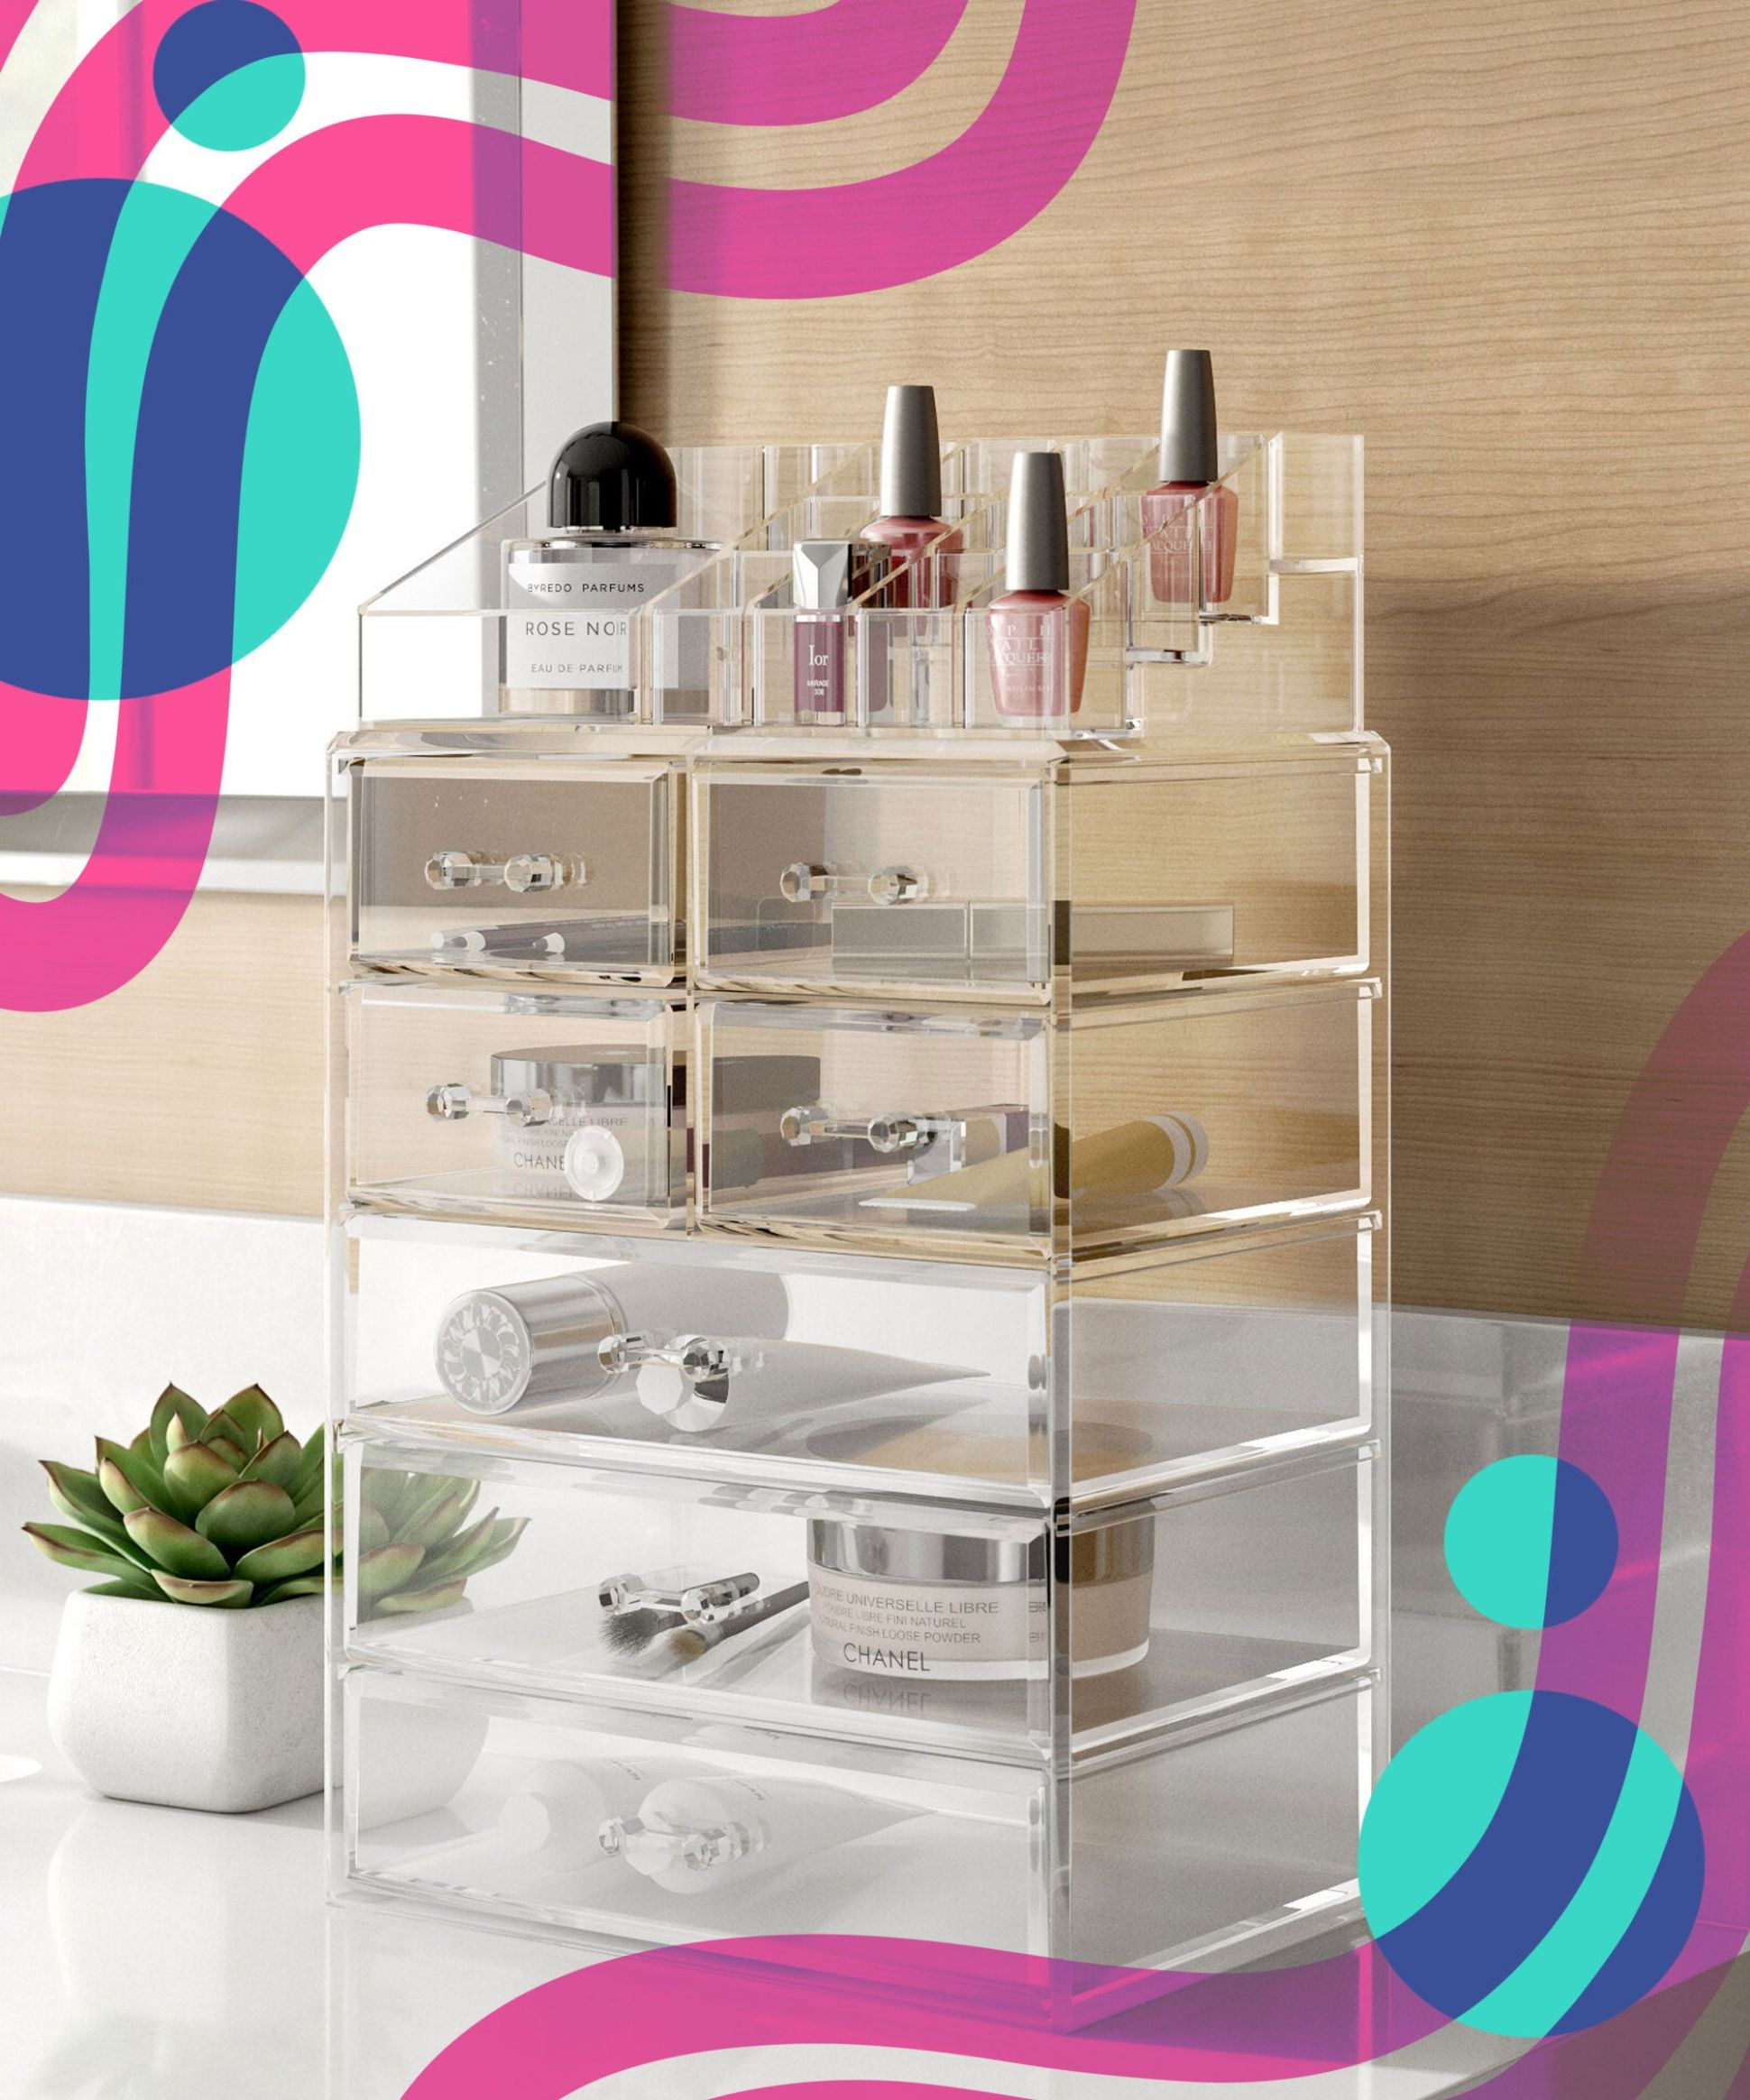 Best Makeup Organizers For Beauty Product Storage 10 - makeup room organiser